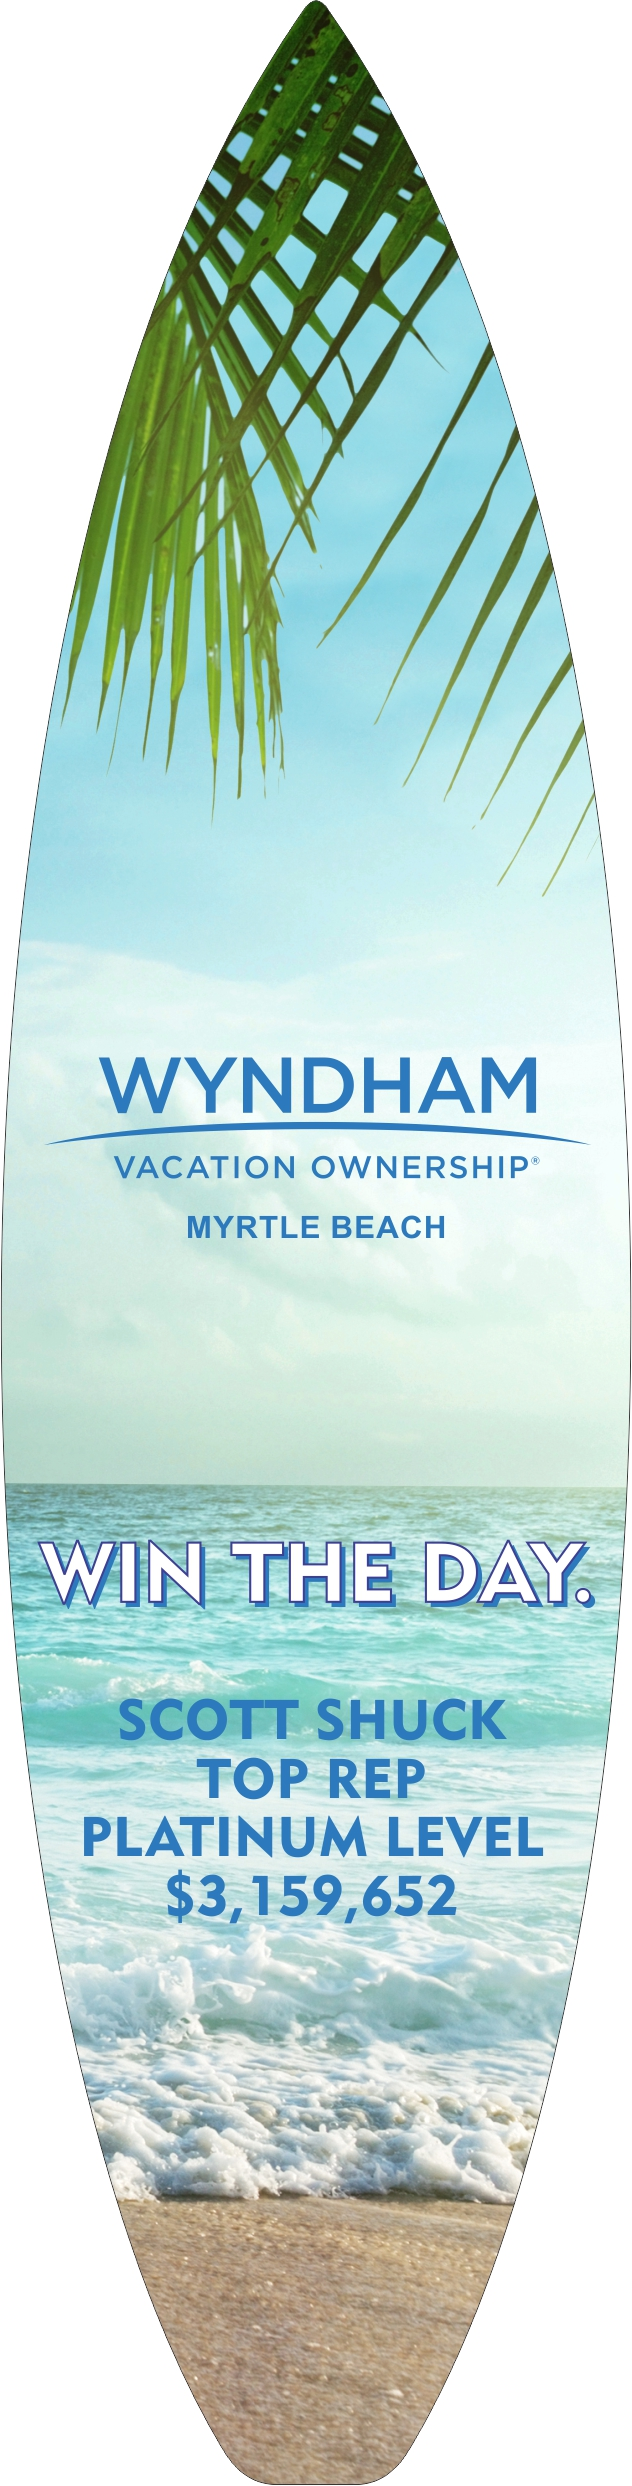 Wyndham Surf Awards.jpg